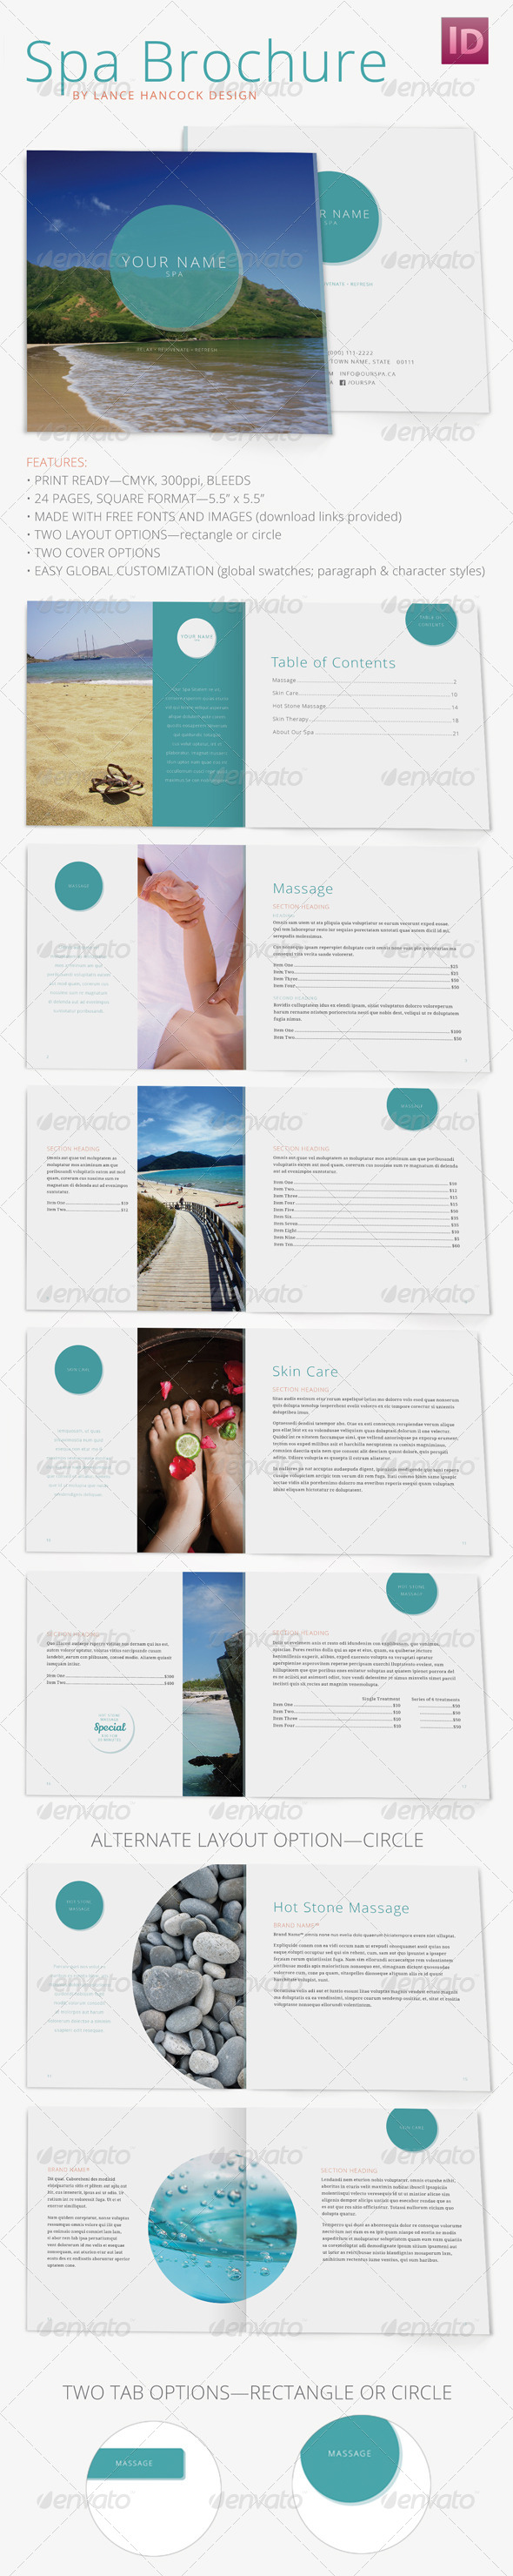 GraphicRiver Square Spa Brochure 5445640